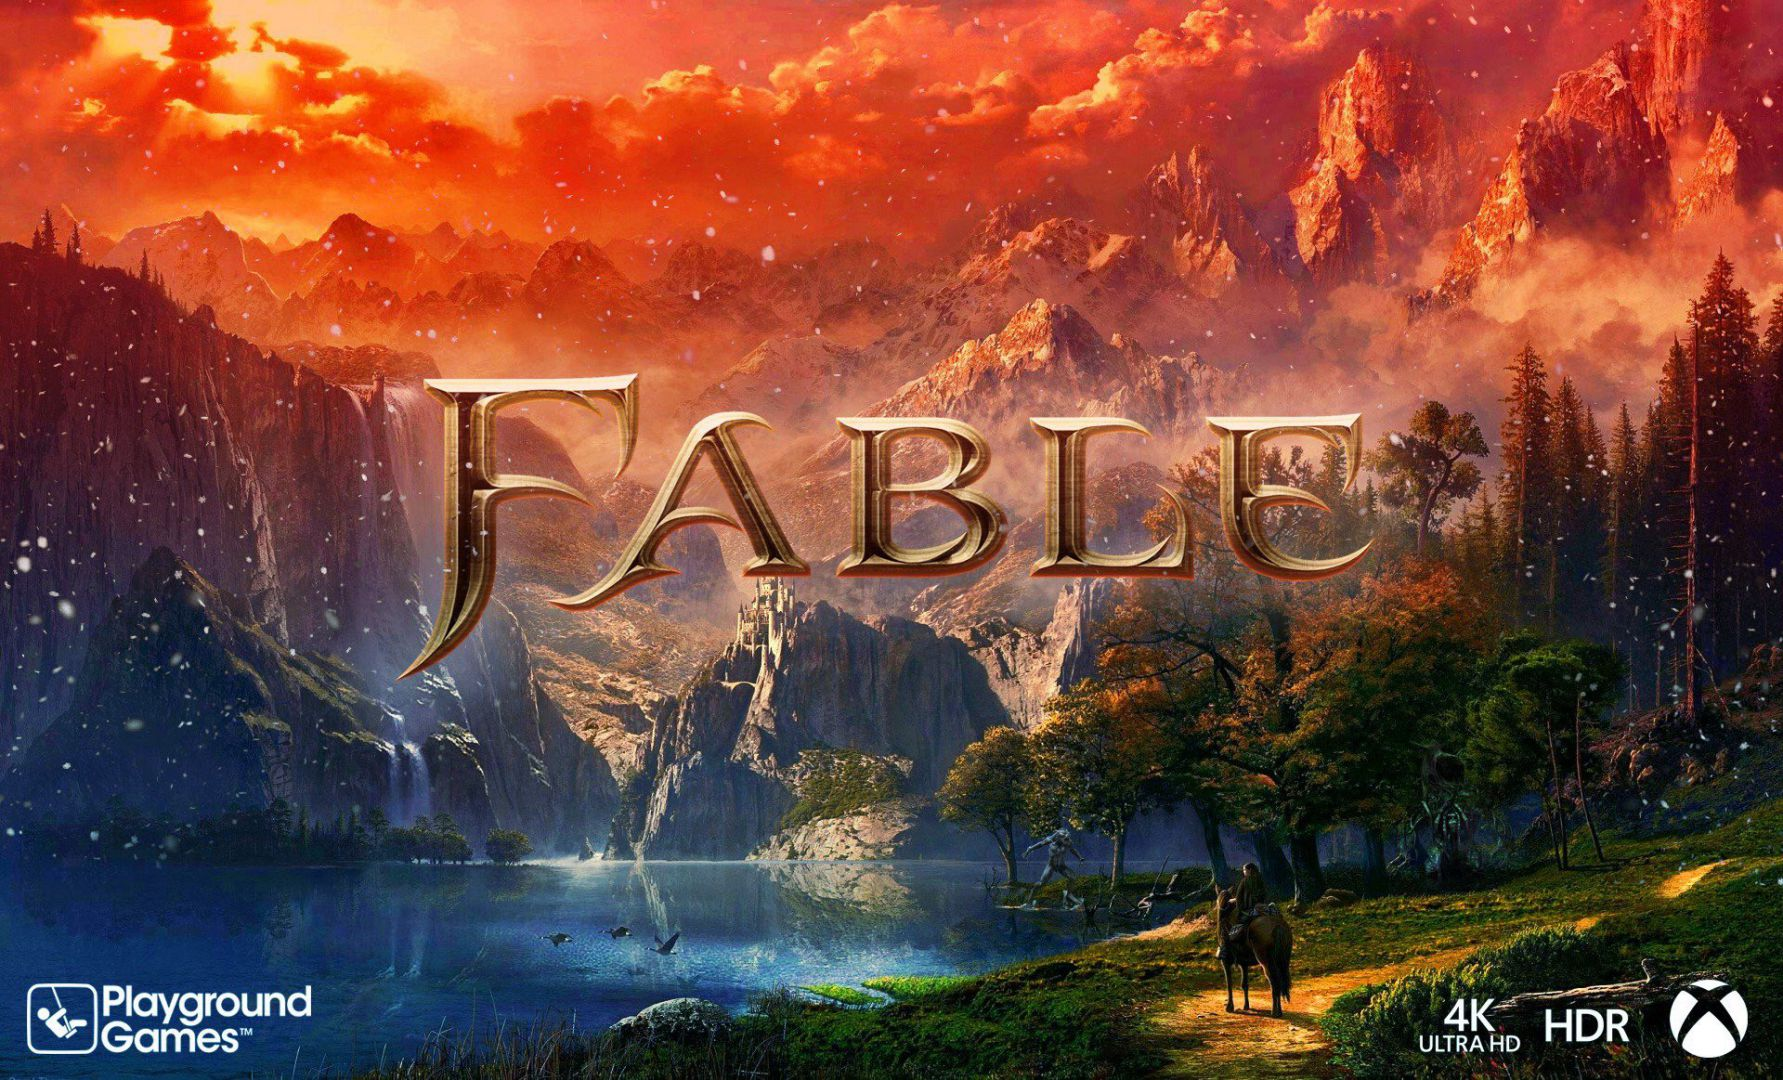 Exclusivos Fable Playground Games